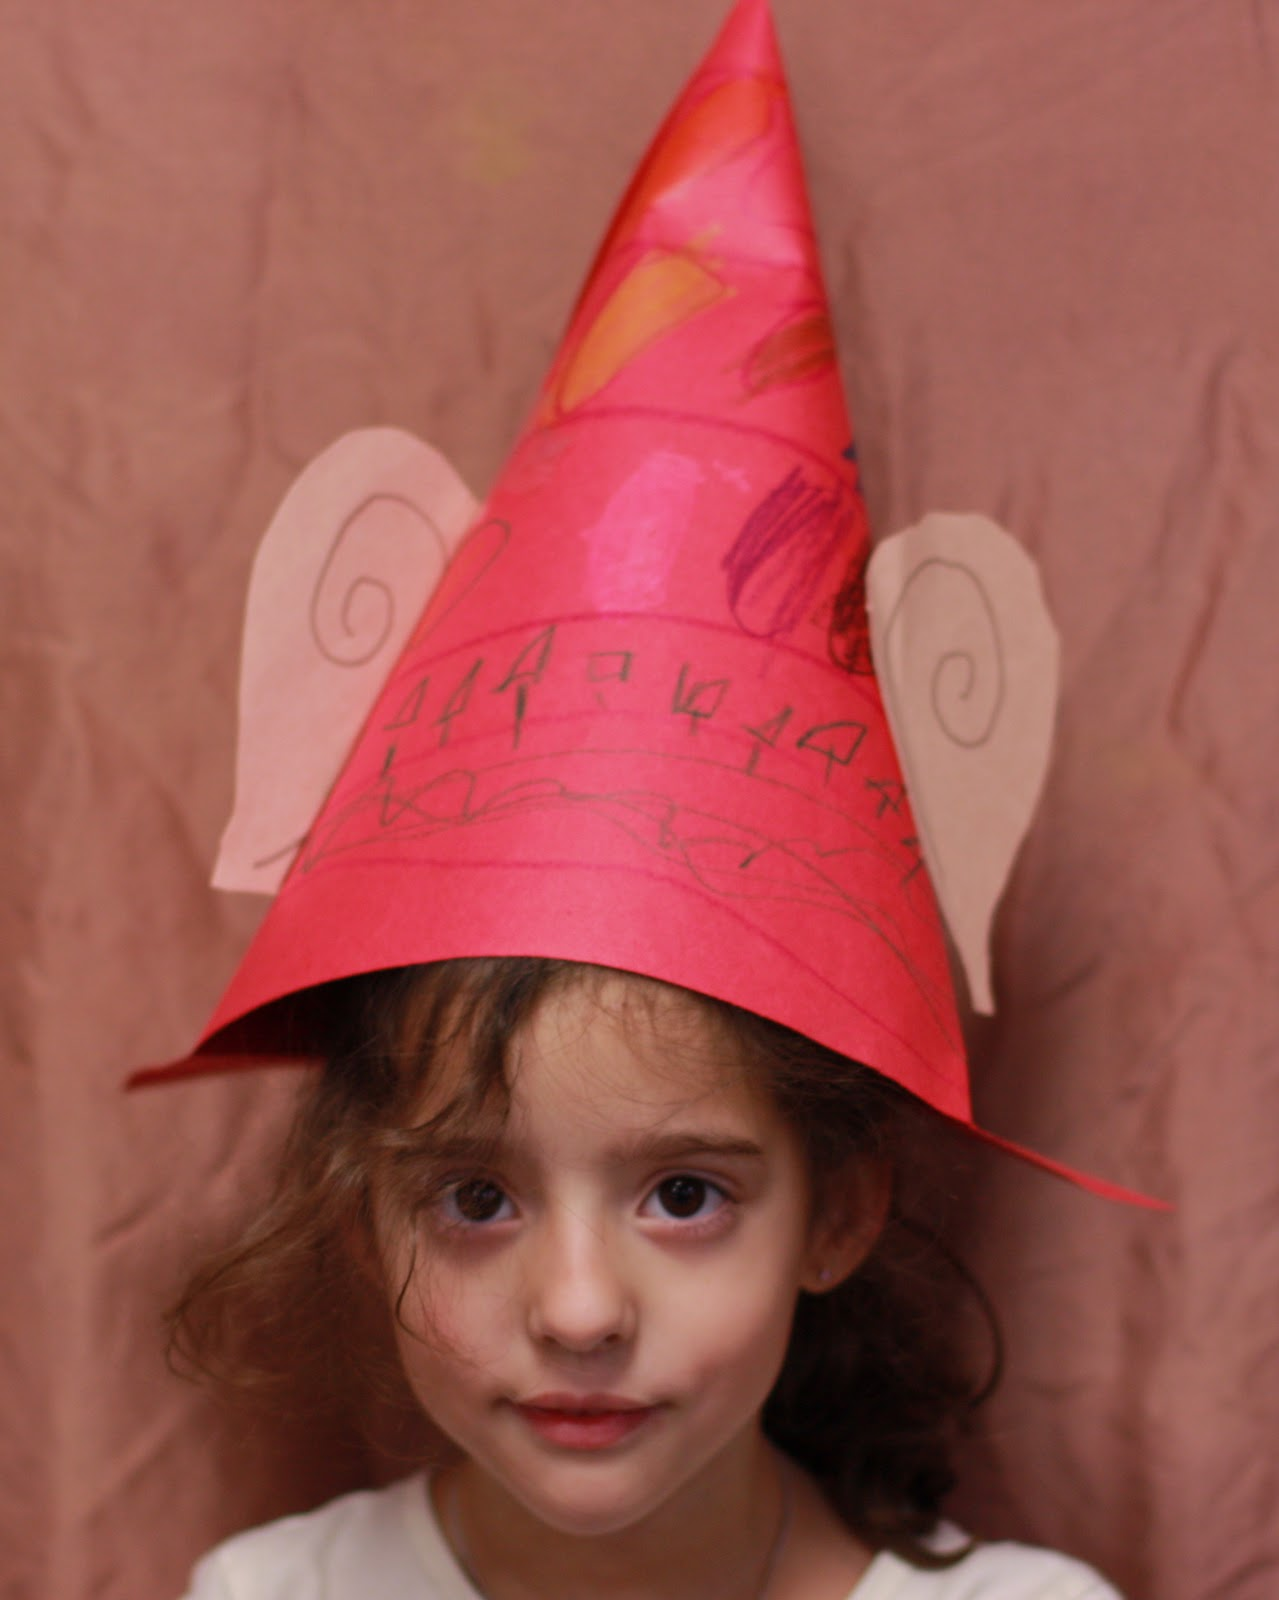 ... what fun! With the Elf on the Shelf rage – we had to make Elf hats